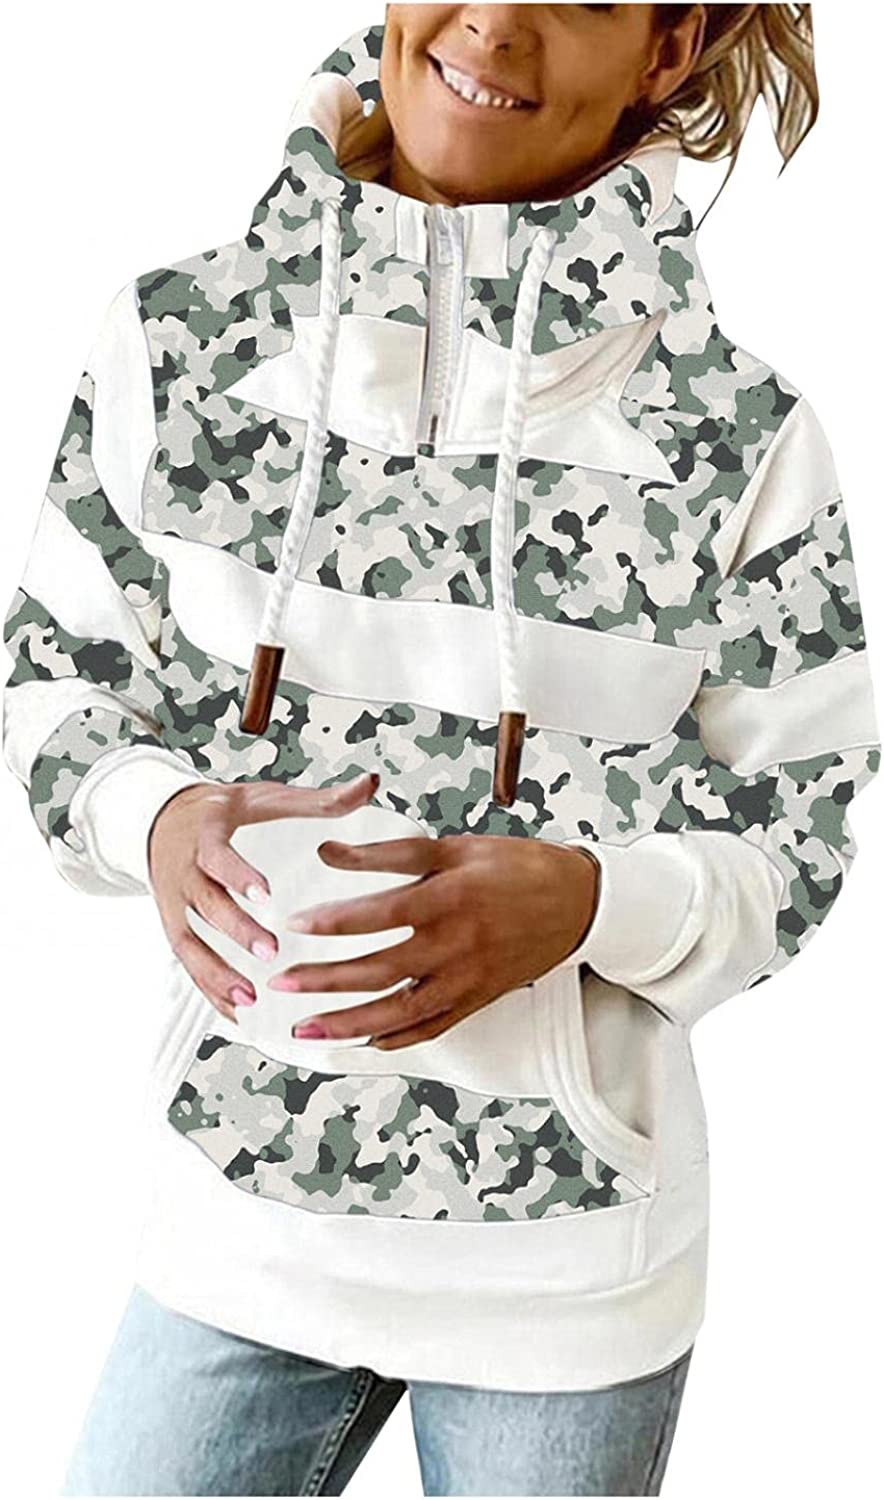 AODONG Hoodies for Women with Designs Casual Striped Zip Up Hooded Pullover Lightweight Long Sleeves Shirts Tops